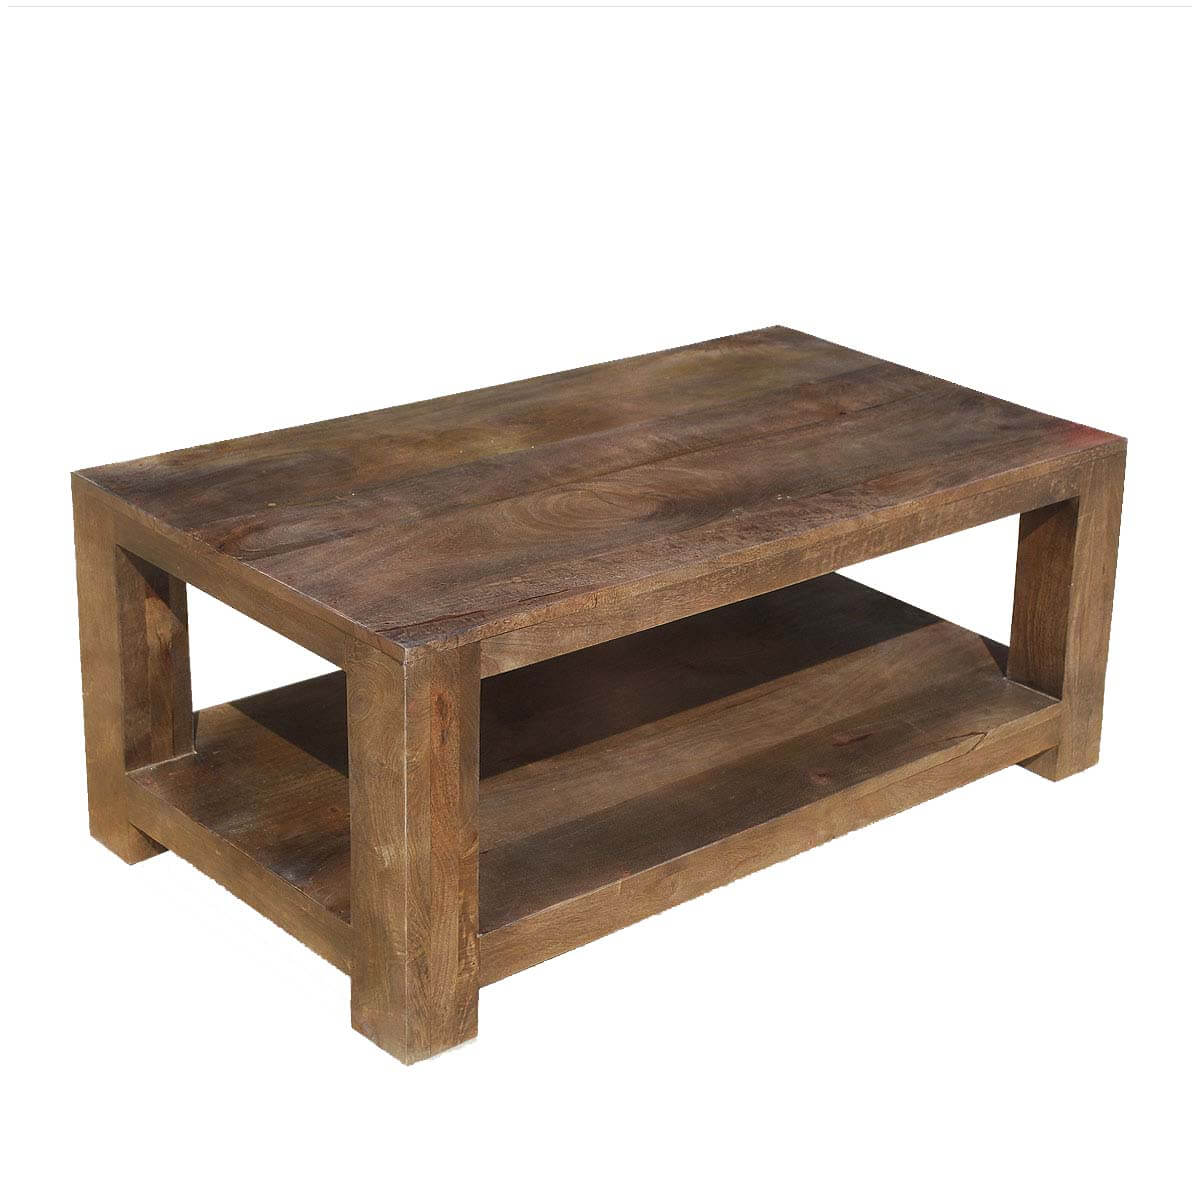 Contemporary mango wood 2 tier 43 coffee table for Modern wooden coffee tables